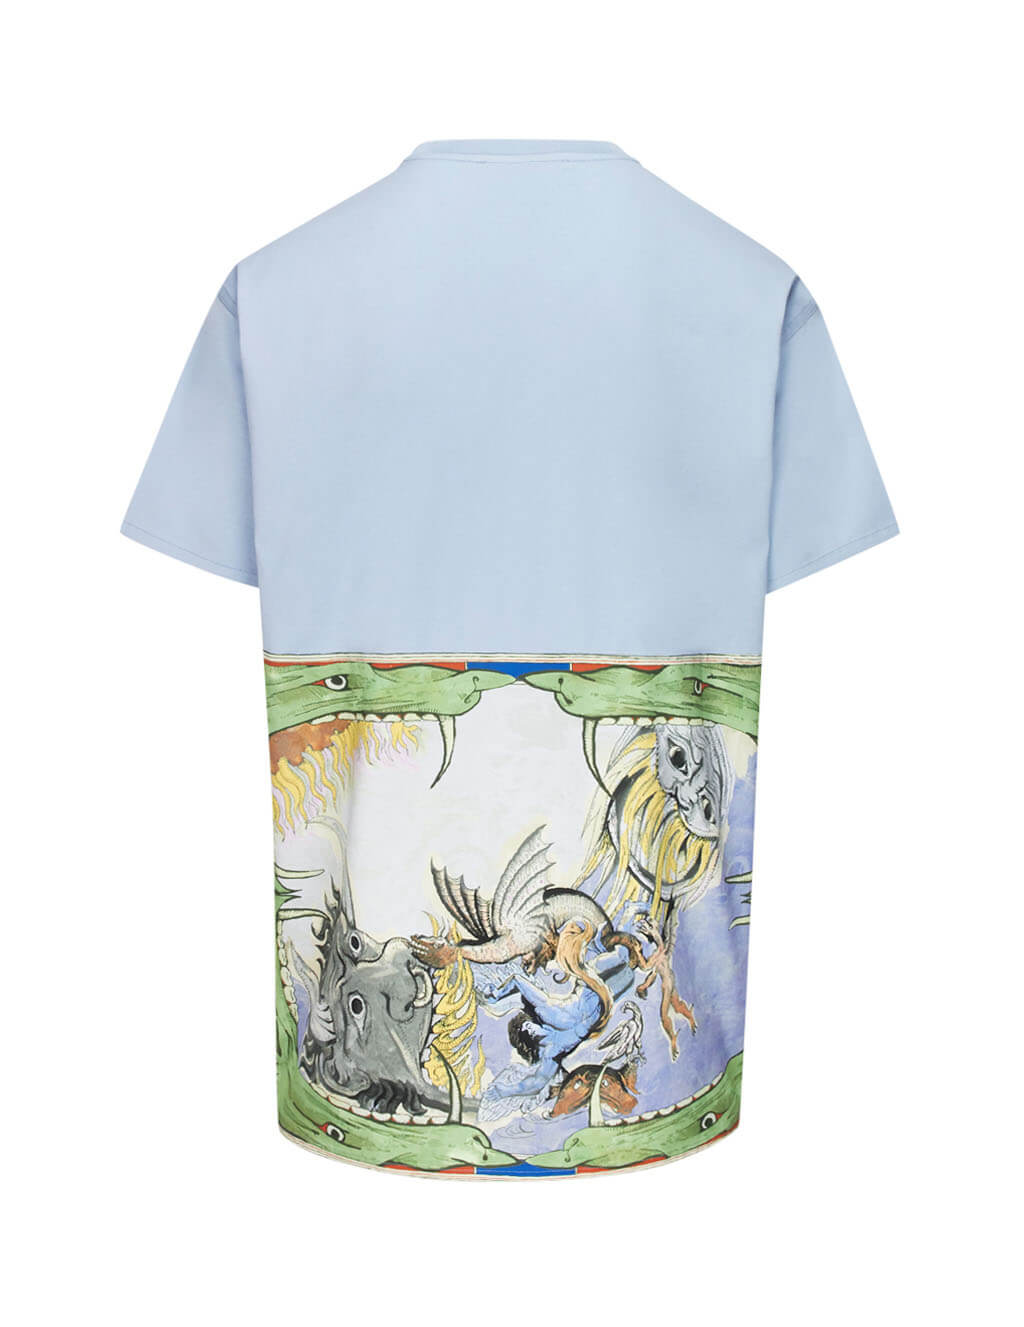 Givenchy Men's Giulio Fashion Light Blue Icarus Oversized T-Shirt BM70QG3002451